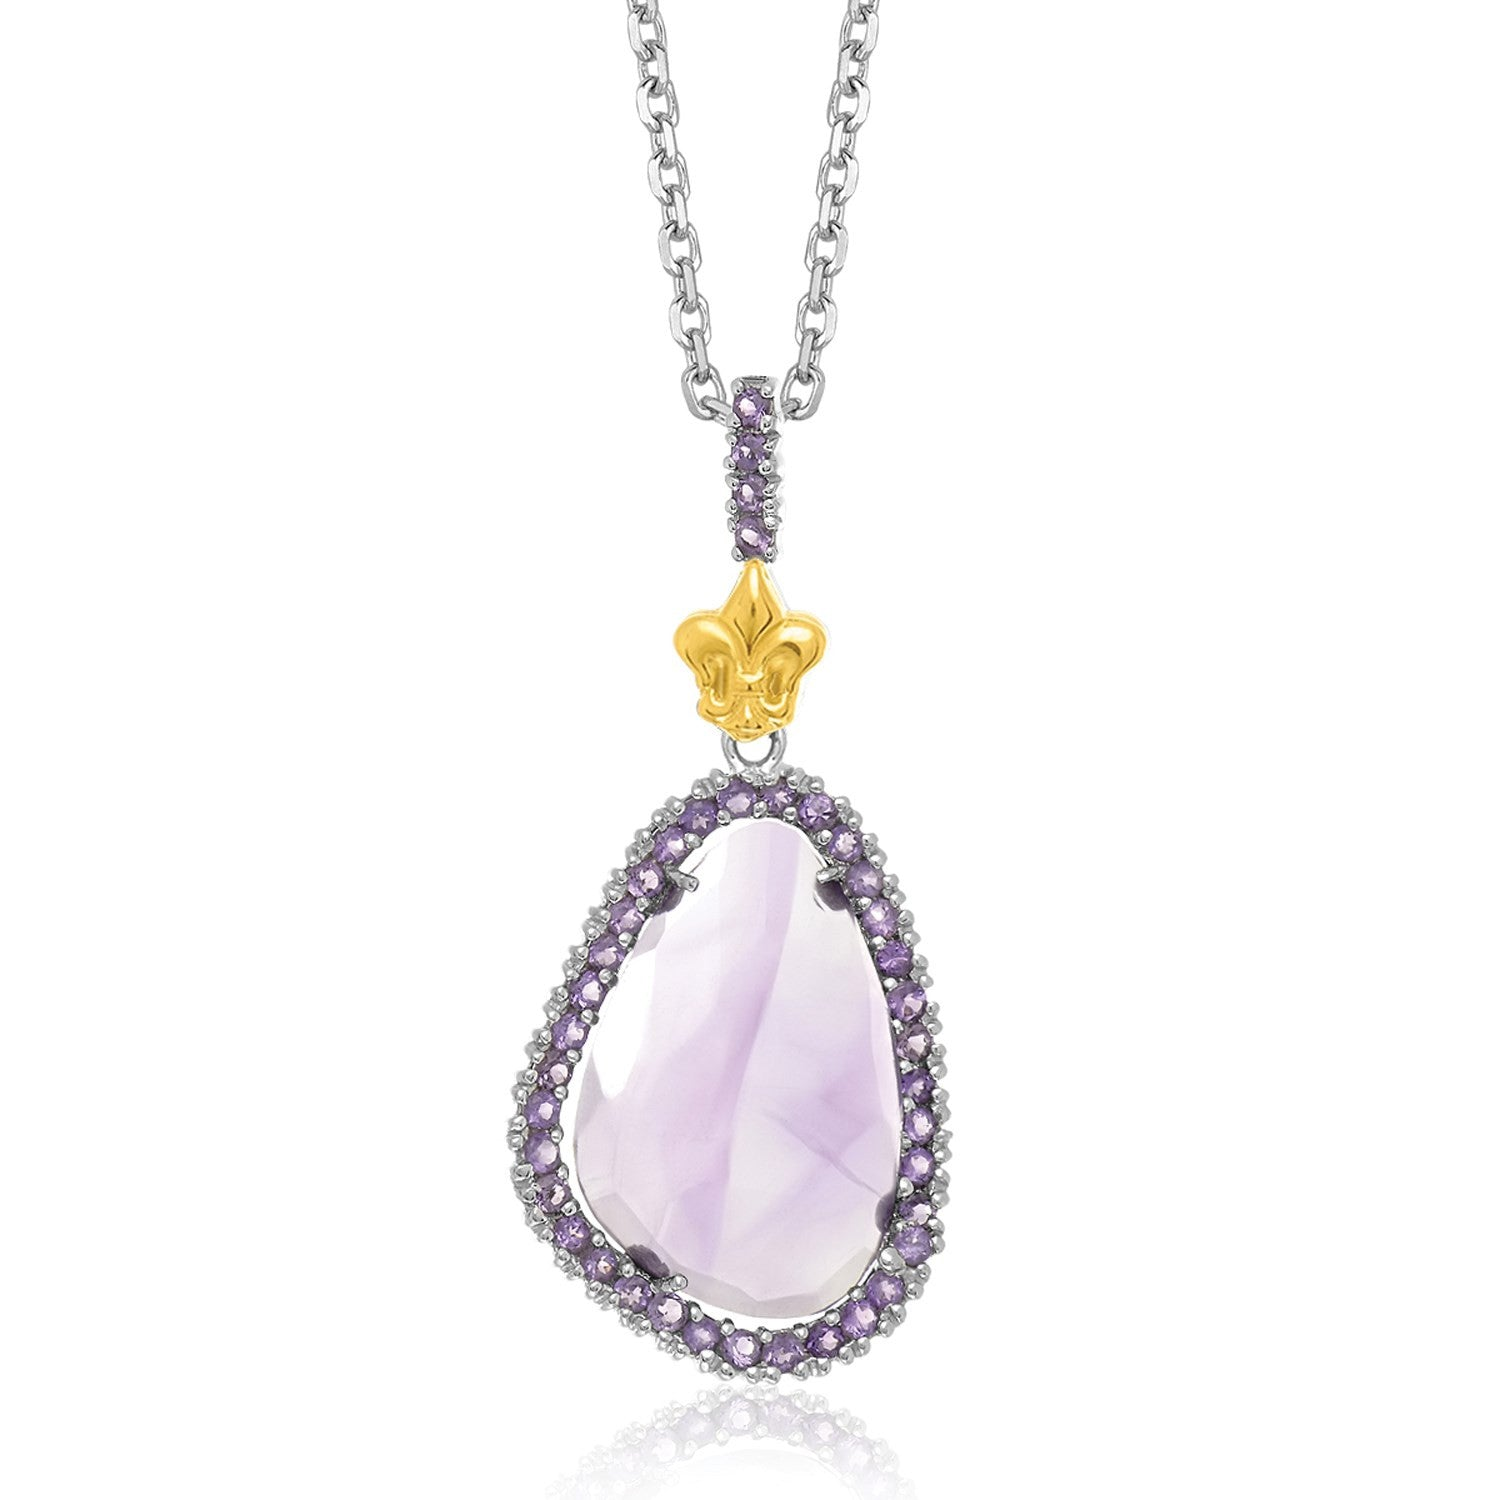 18k yellow gold sterling silver amethyst pendant riverbend diamonds 18k yellow gold sterling silver amethyst pendant cp86080 18 aloadofball Gallery